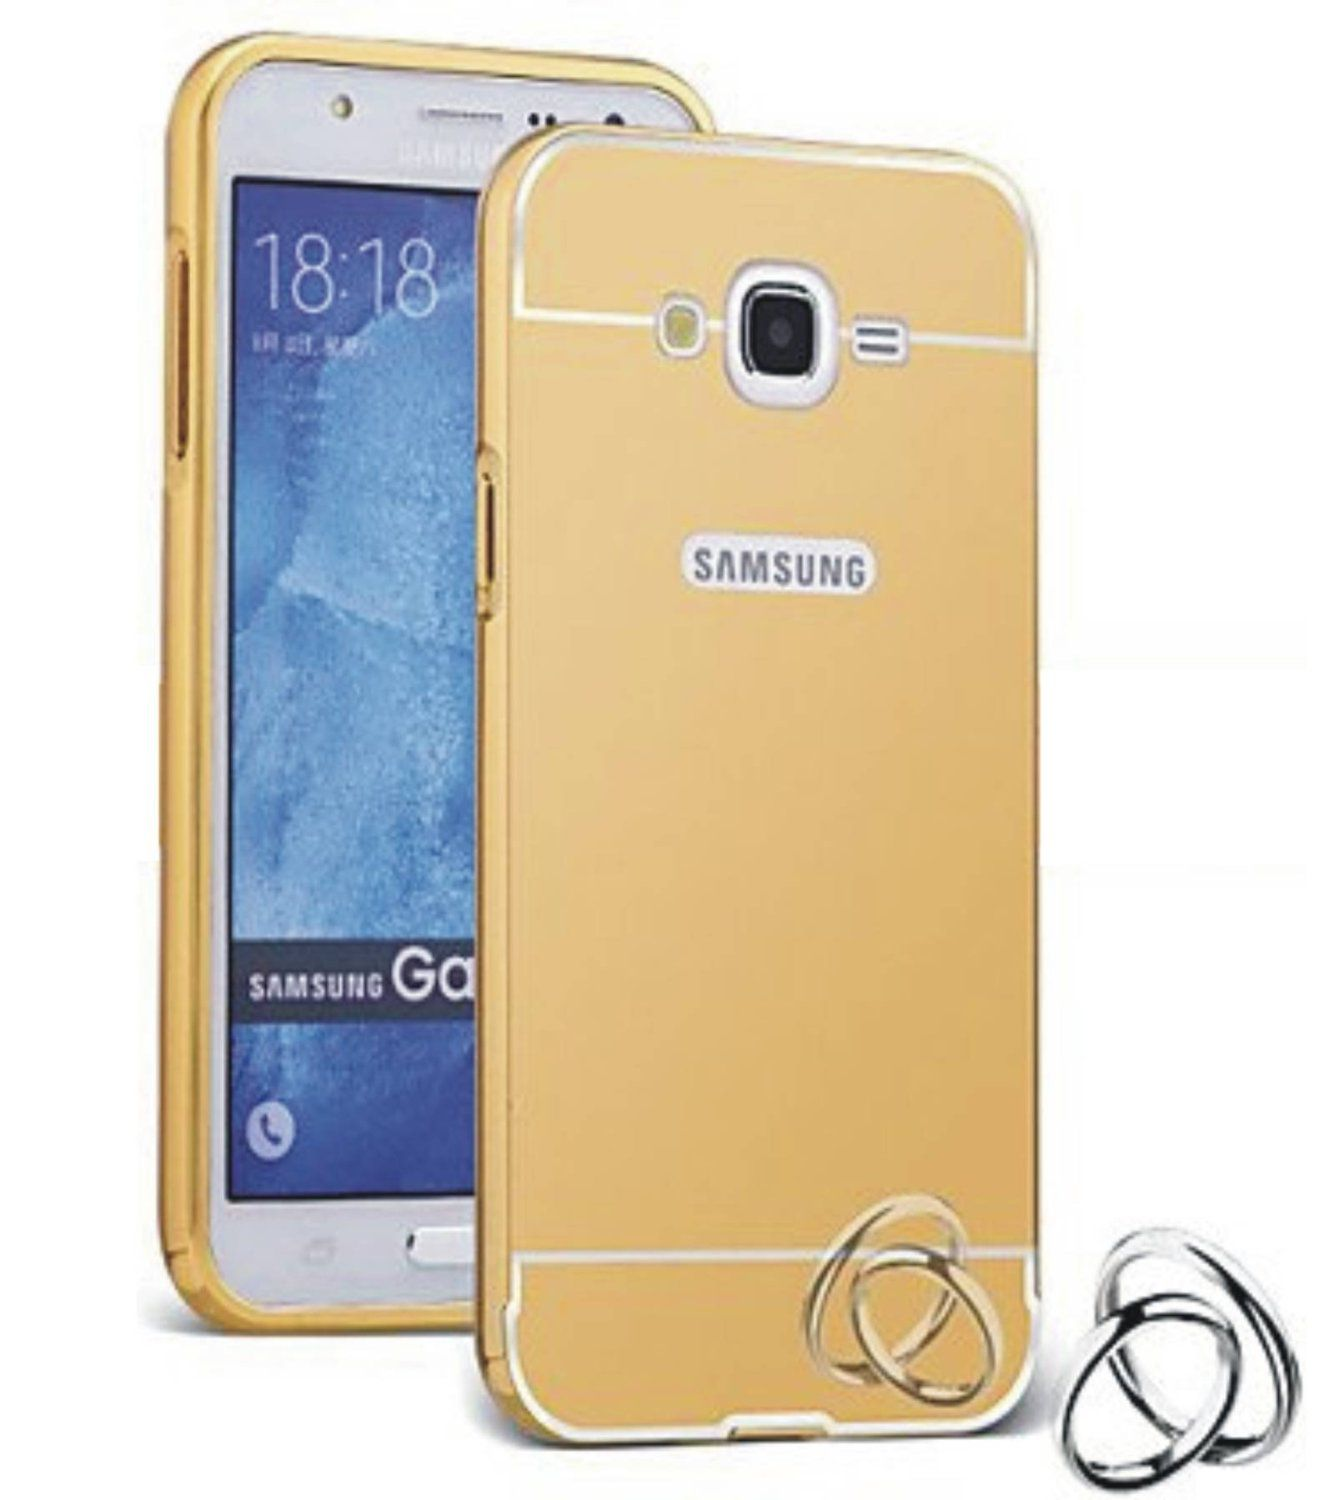 Style Crome Luxury Metal Bumper + Acrylic Mirror Back Cover Case For Samsung Galaxy E5 + Mini Aux wired Selfie Stick.